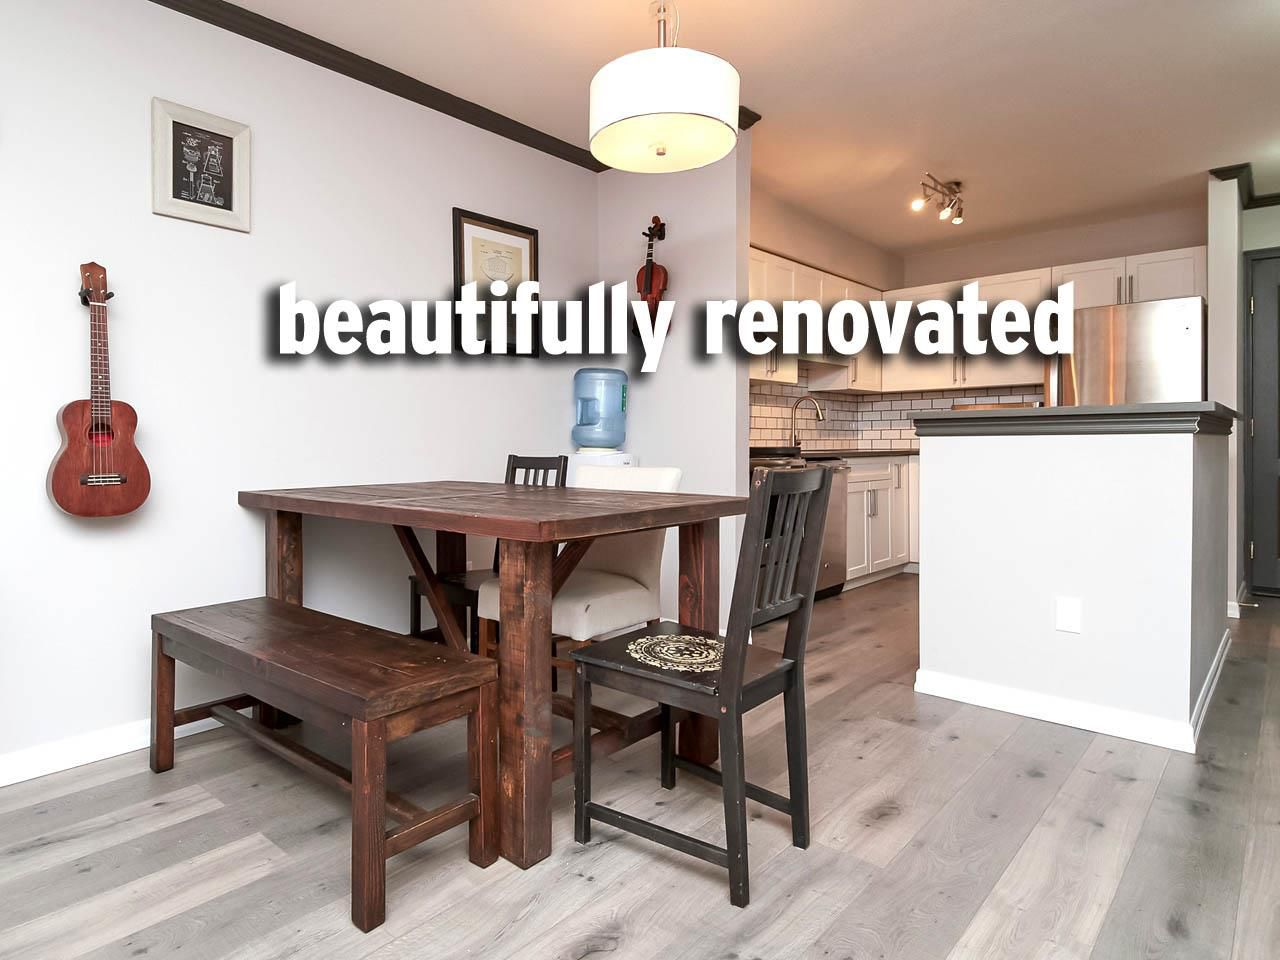 This cosy apartment has been completely redone from the crown molding to the new flooring.